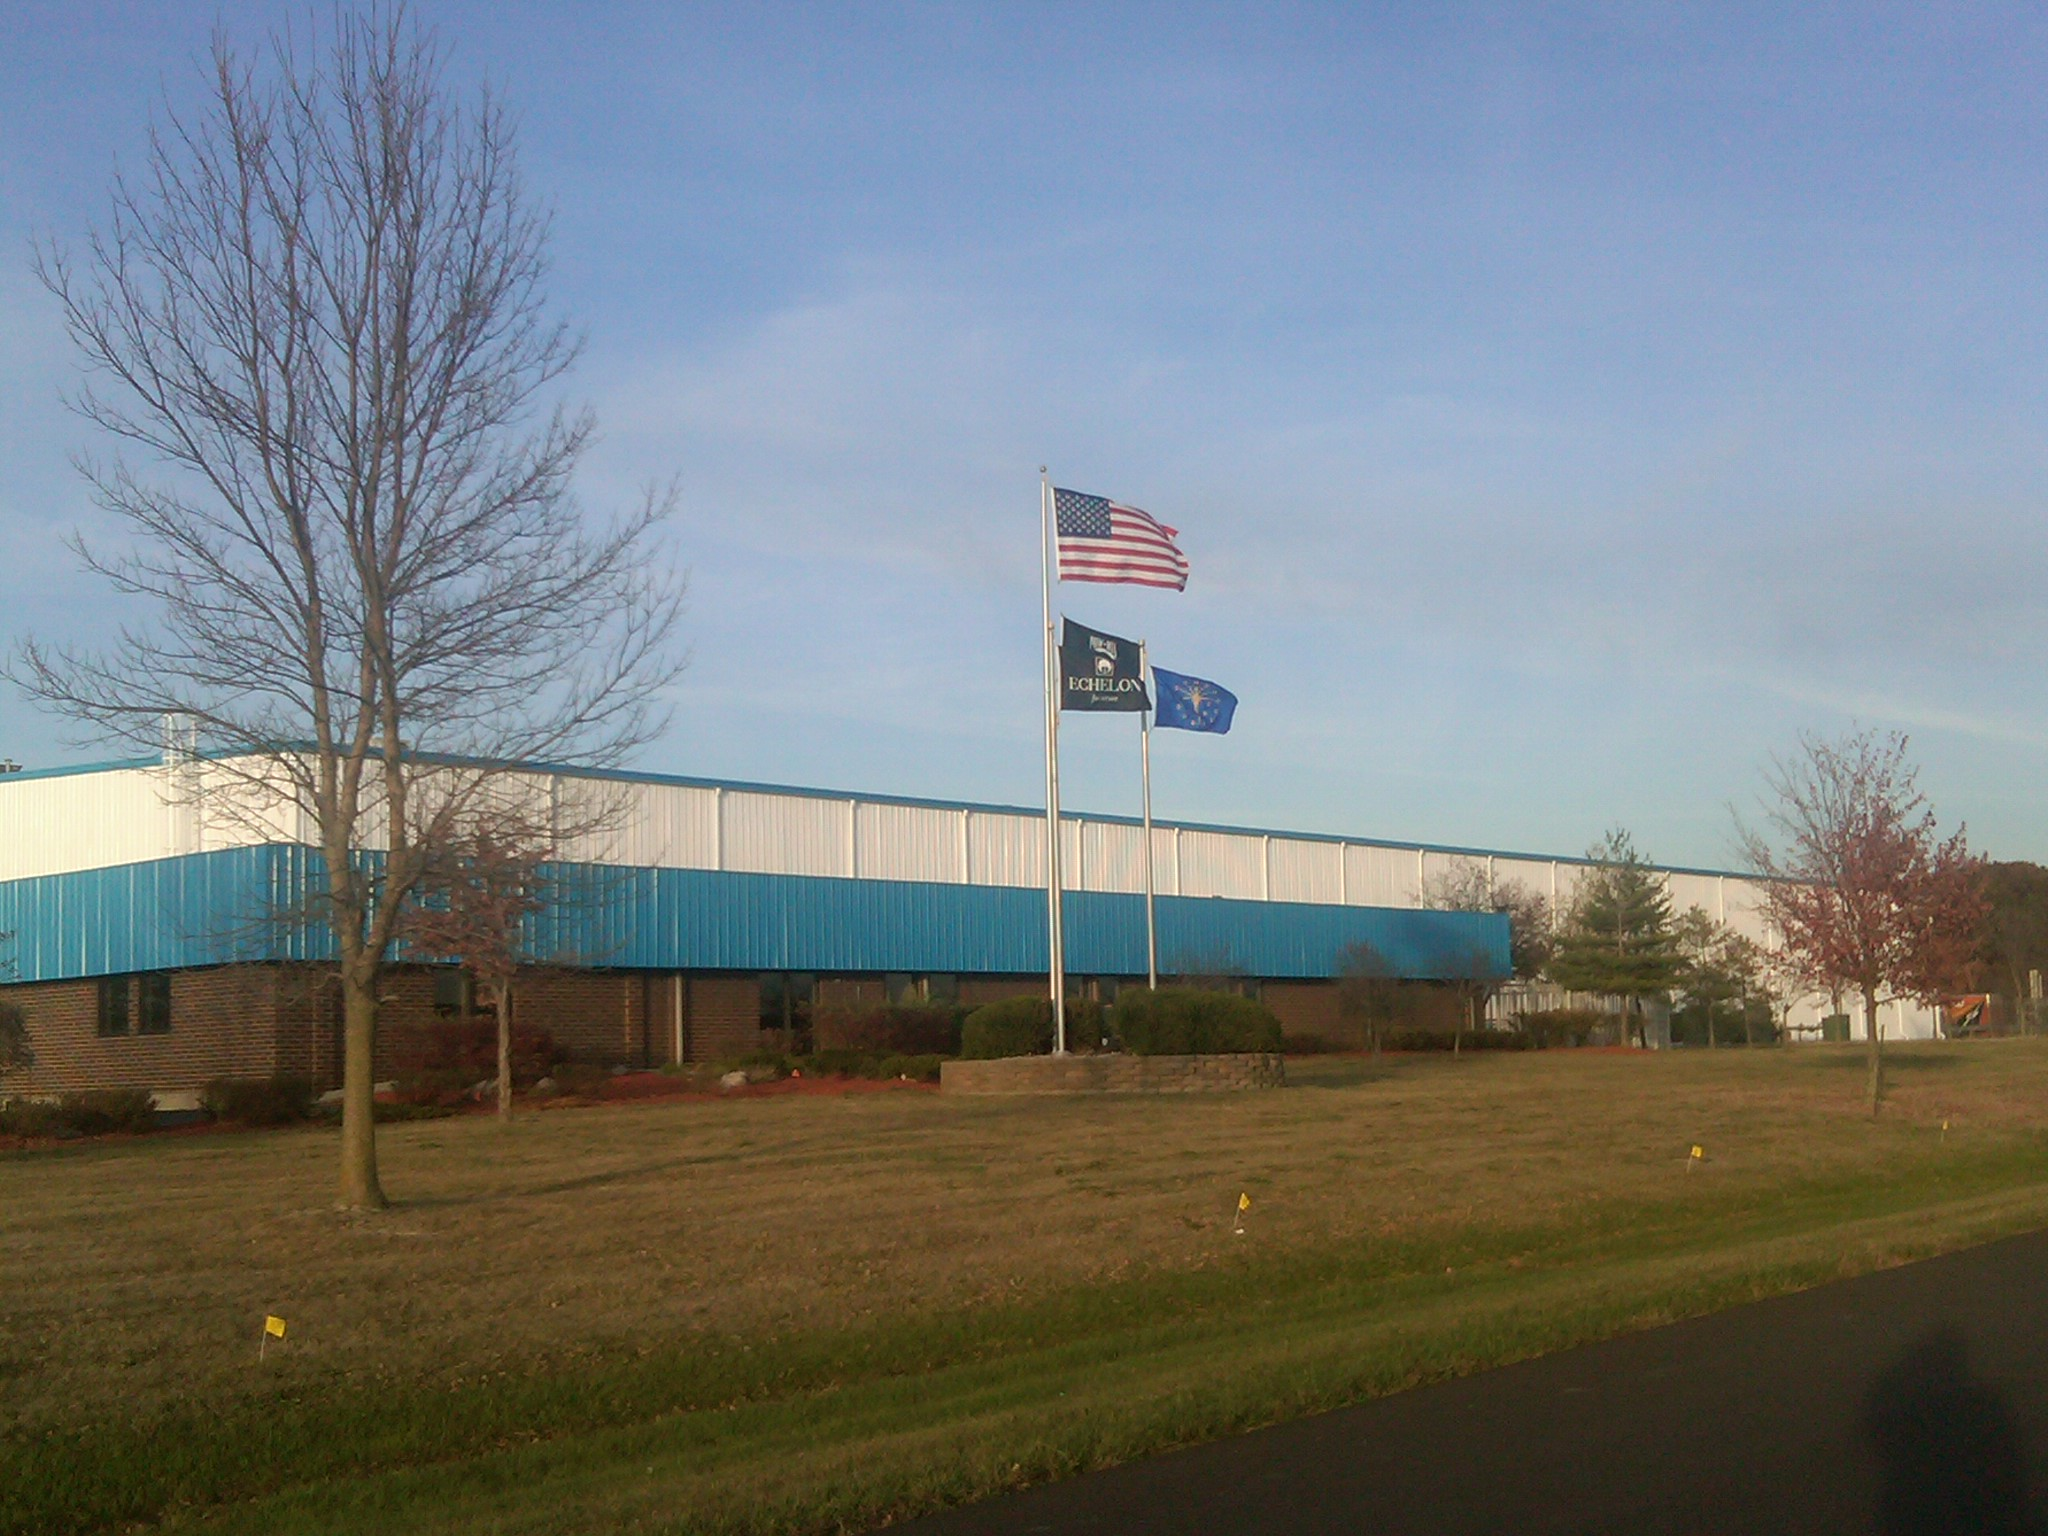 Munire Factory in Indiana